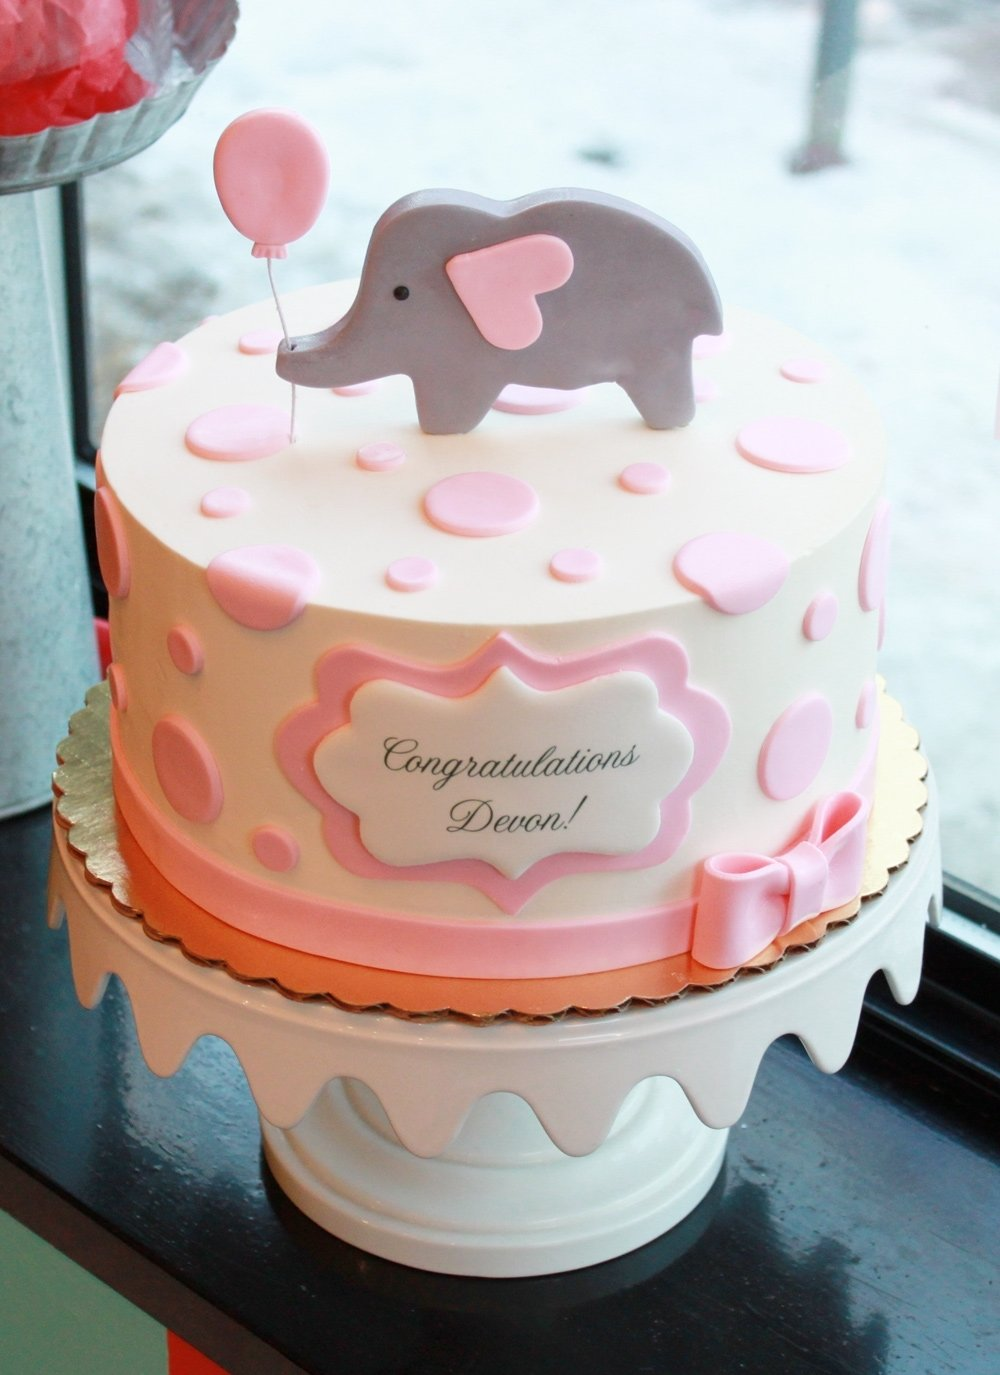 10 Perfect Baby Girl Shower Cake Ideas gorgeous baby shower cakes stay at home mum 4 2020